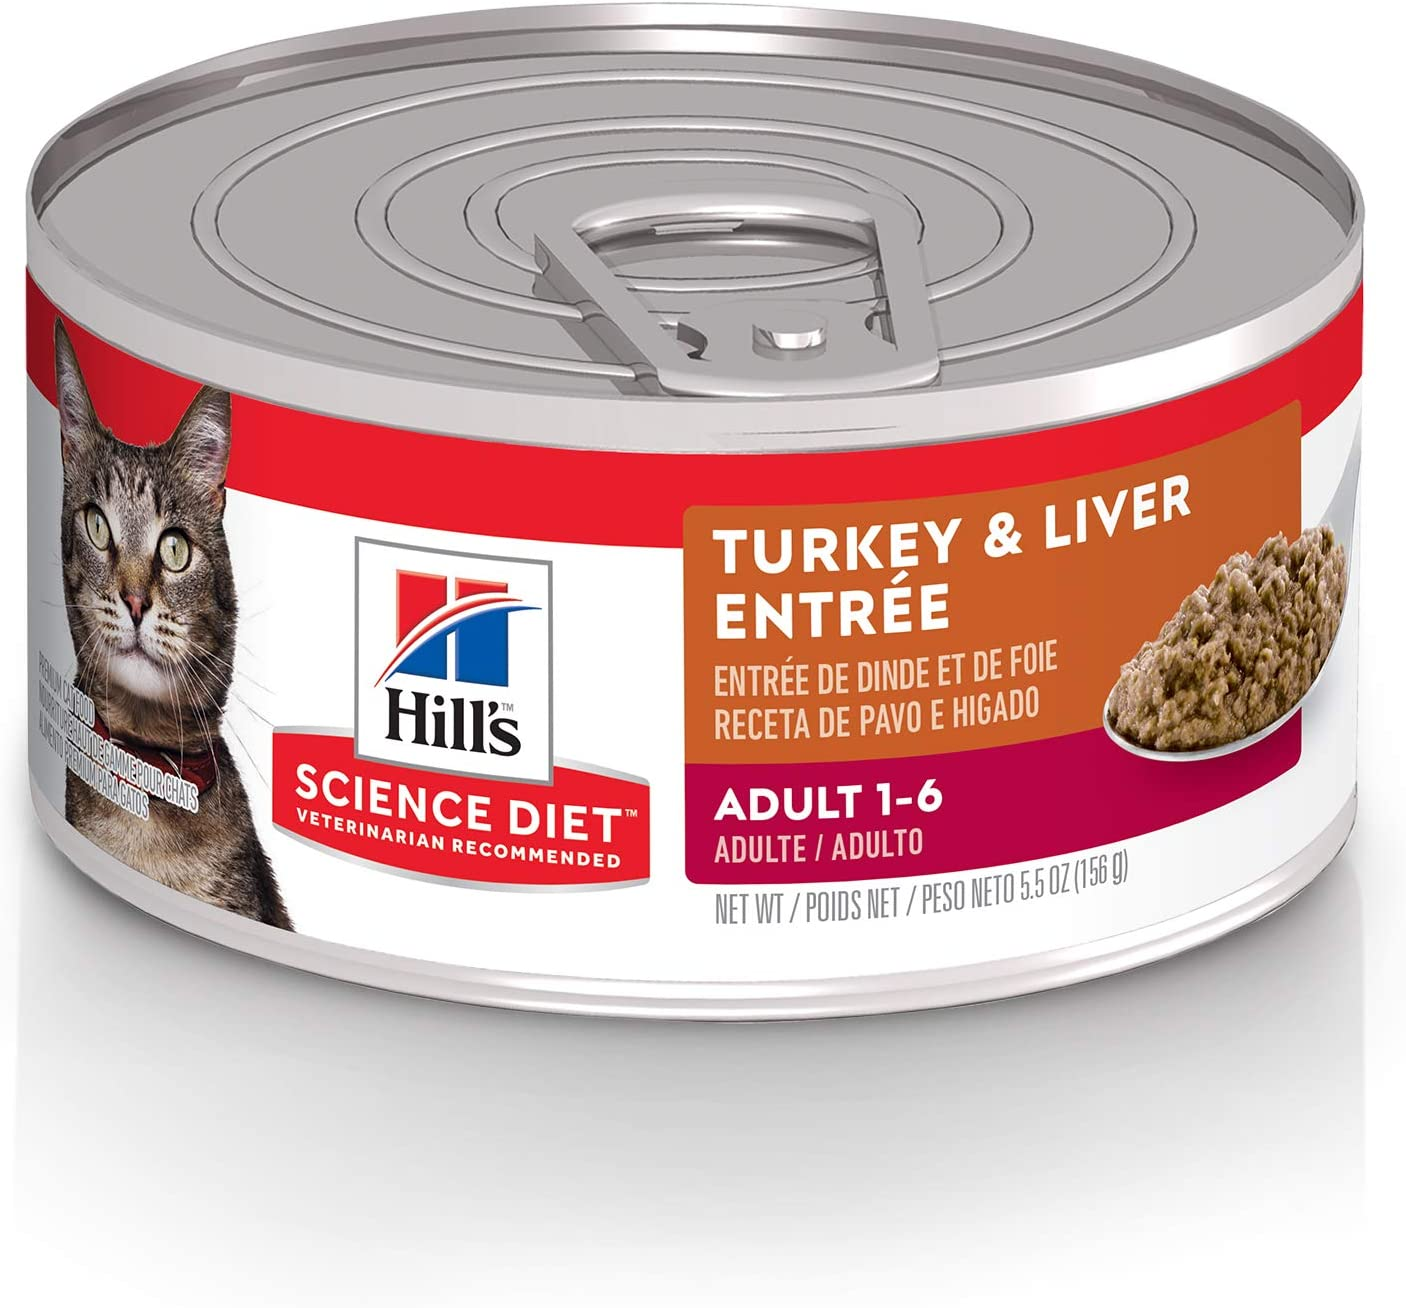 Hill's Science Diet Wet Cat Food, Adult, Minced Turkey & Liver, 5.5 oz Cans, 24 Pack, Hill's Science Diet Wet Cat Food, Adult, Minced Turkey & Liver, 5.5 oz Cans, 24-pack